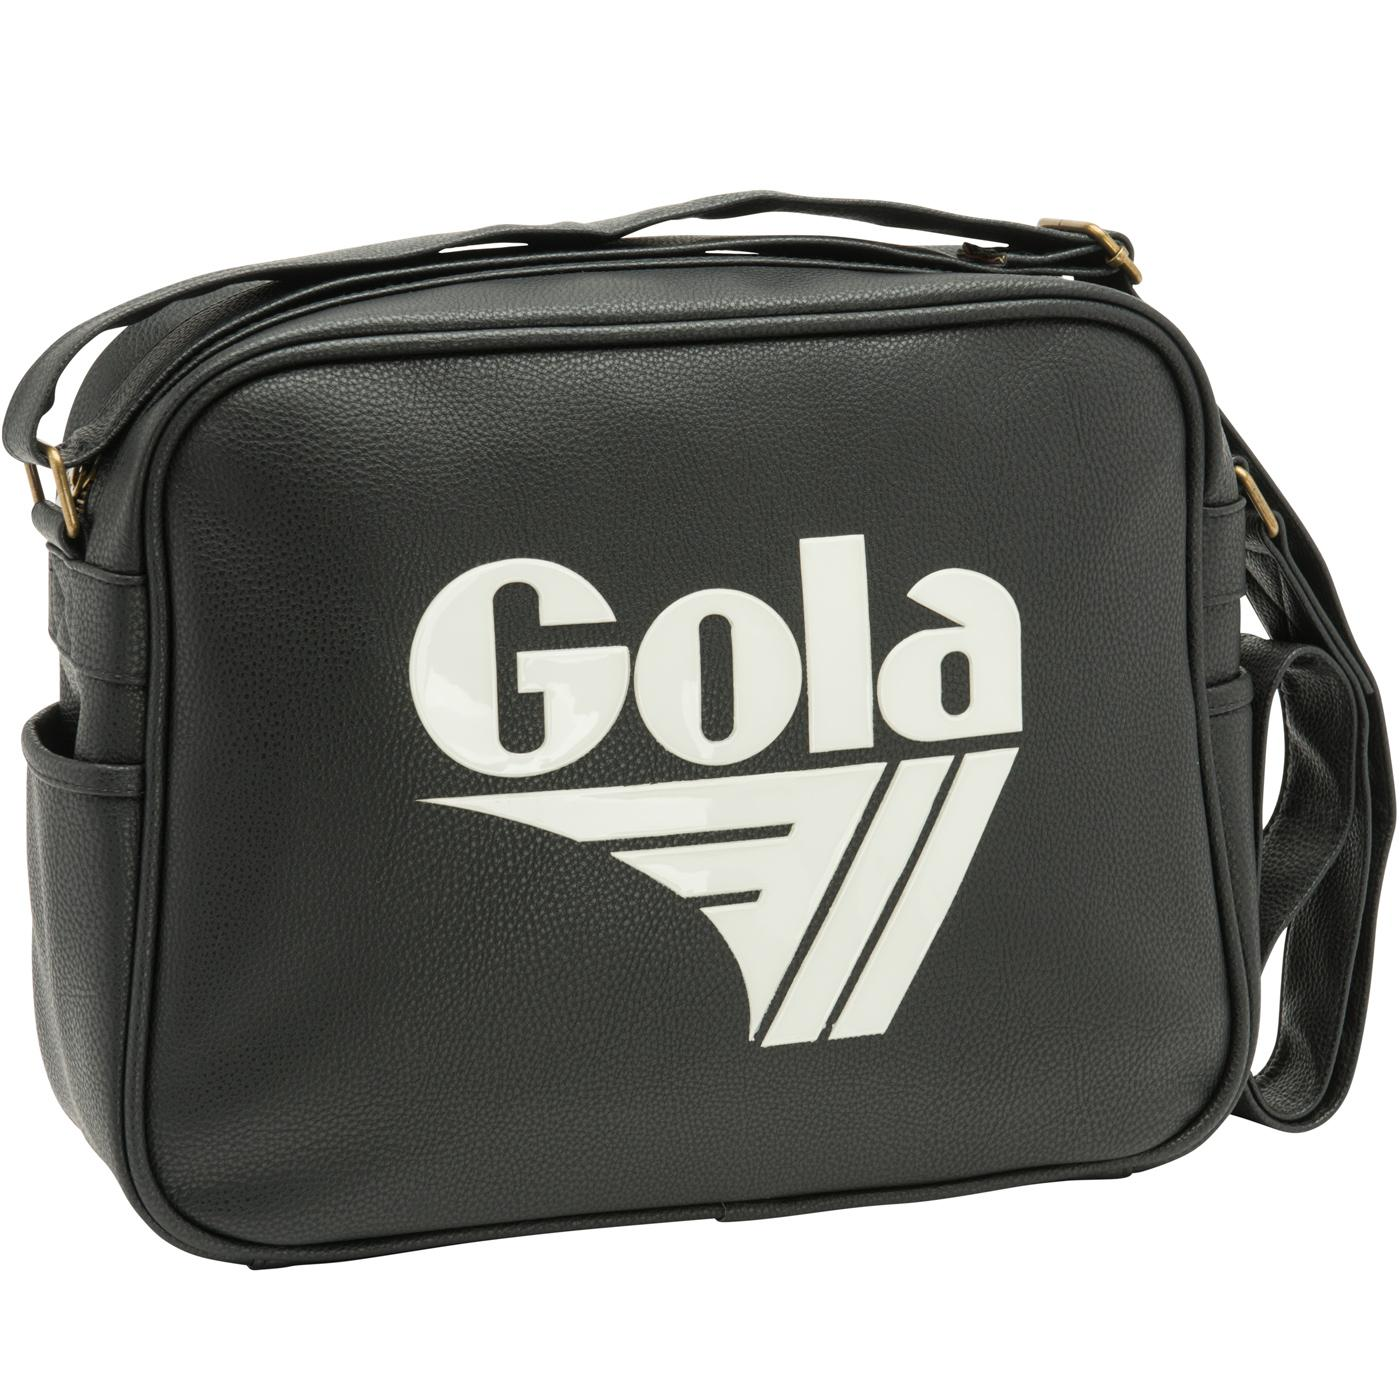 Redford Tournament GOLA Retro Messenger Bag BLACK